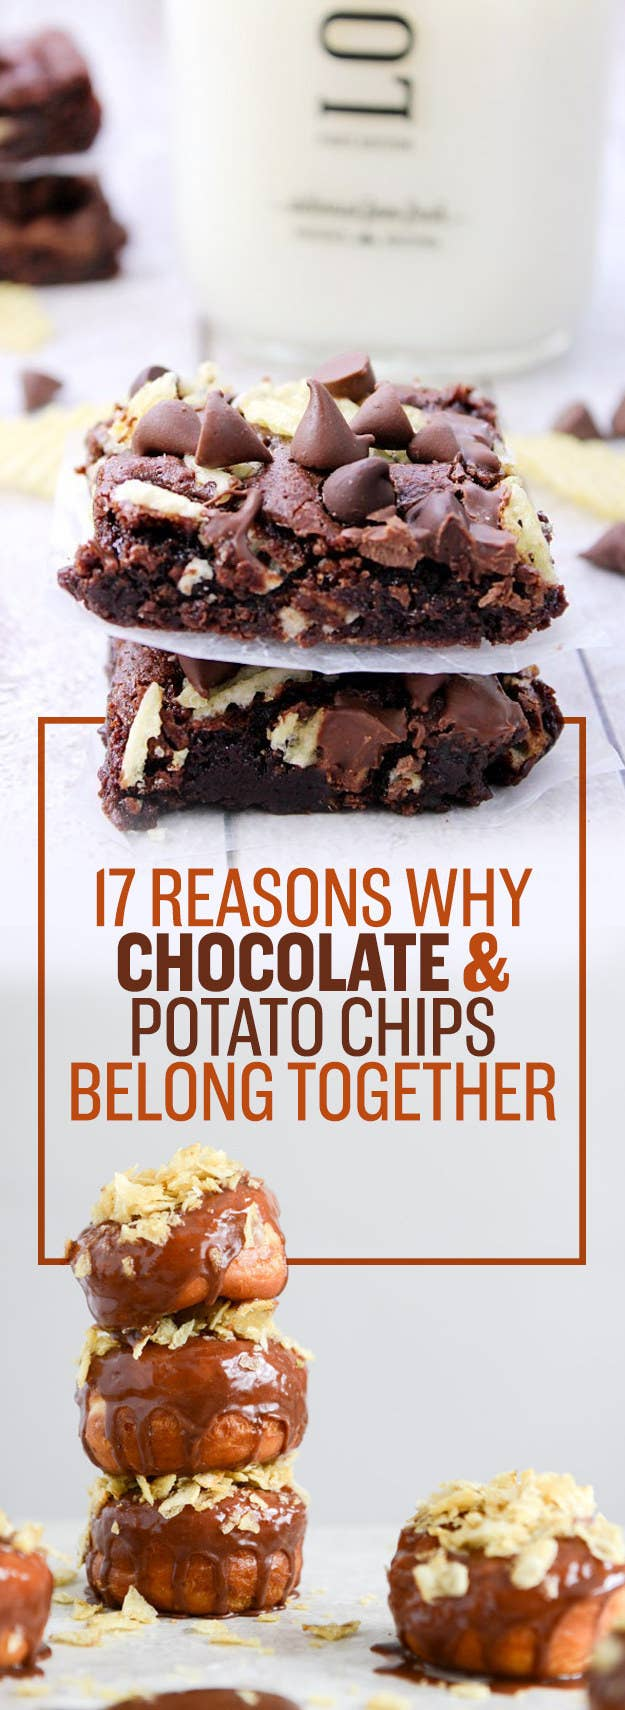 17 Reminders That Chocolate + Potato Chips Is The Best Combo Ever